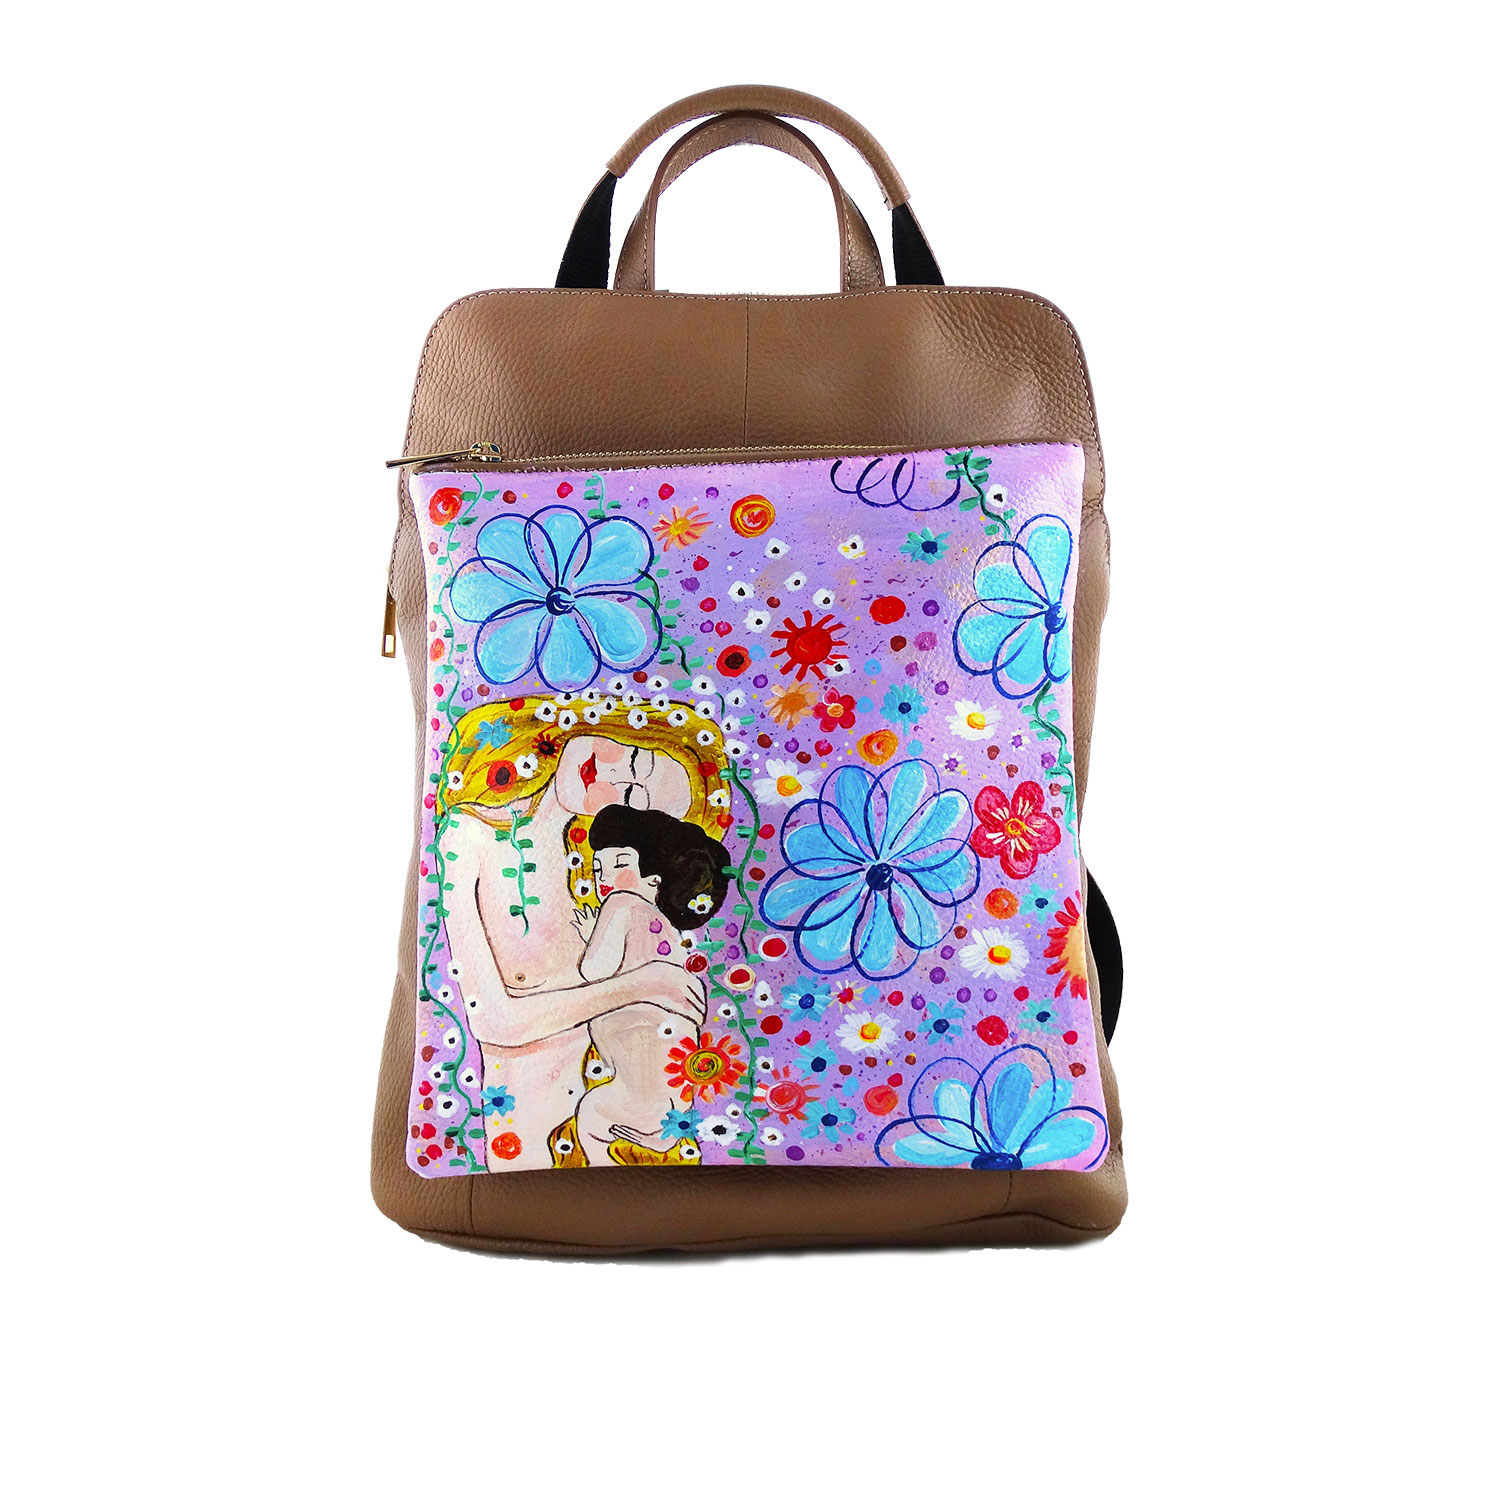 Hand-painted backpack bag - Mother and son by Gustav Klimt